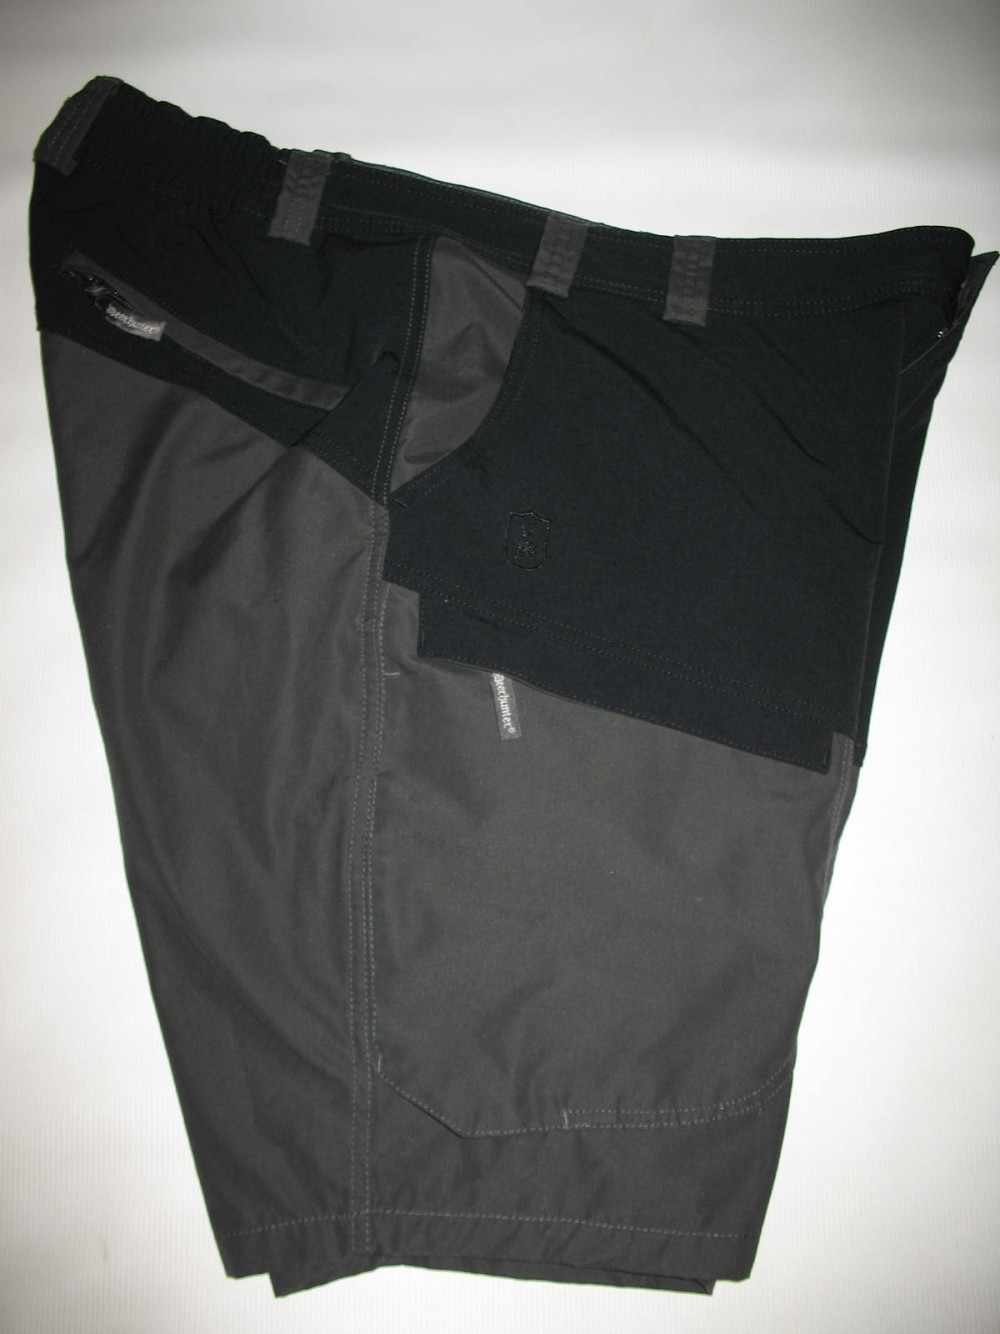 Шорты DEERHUNTER strike shorts (размер 60-XXL/XXXL) - 4